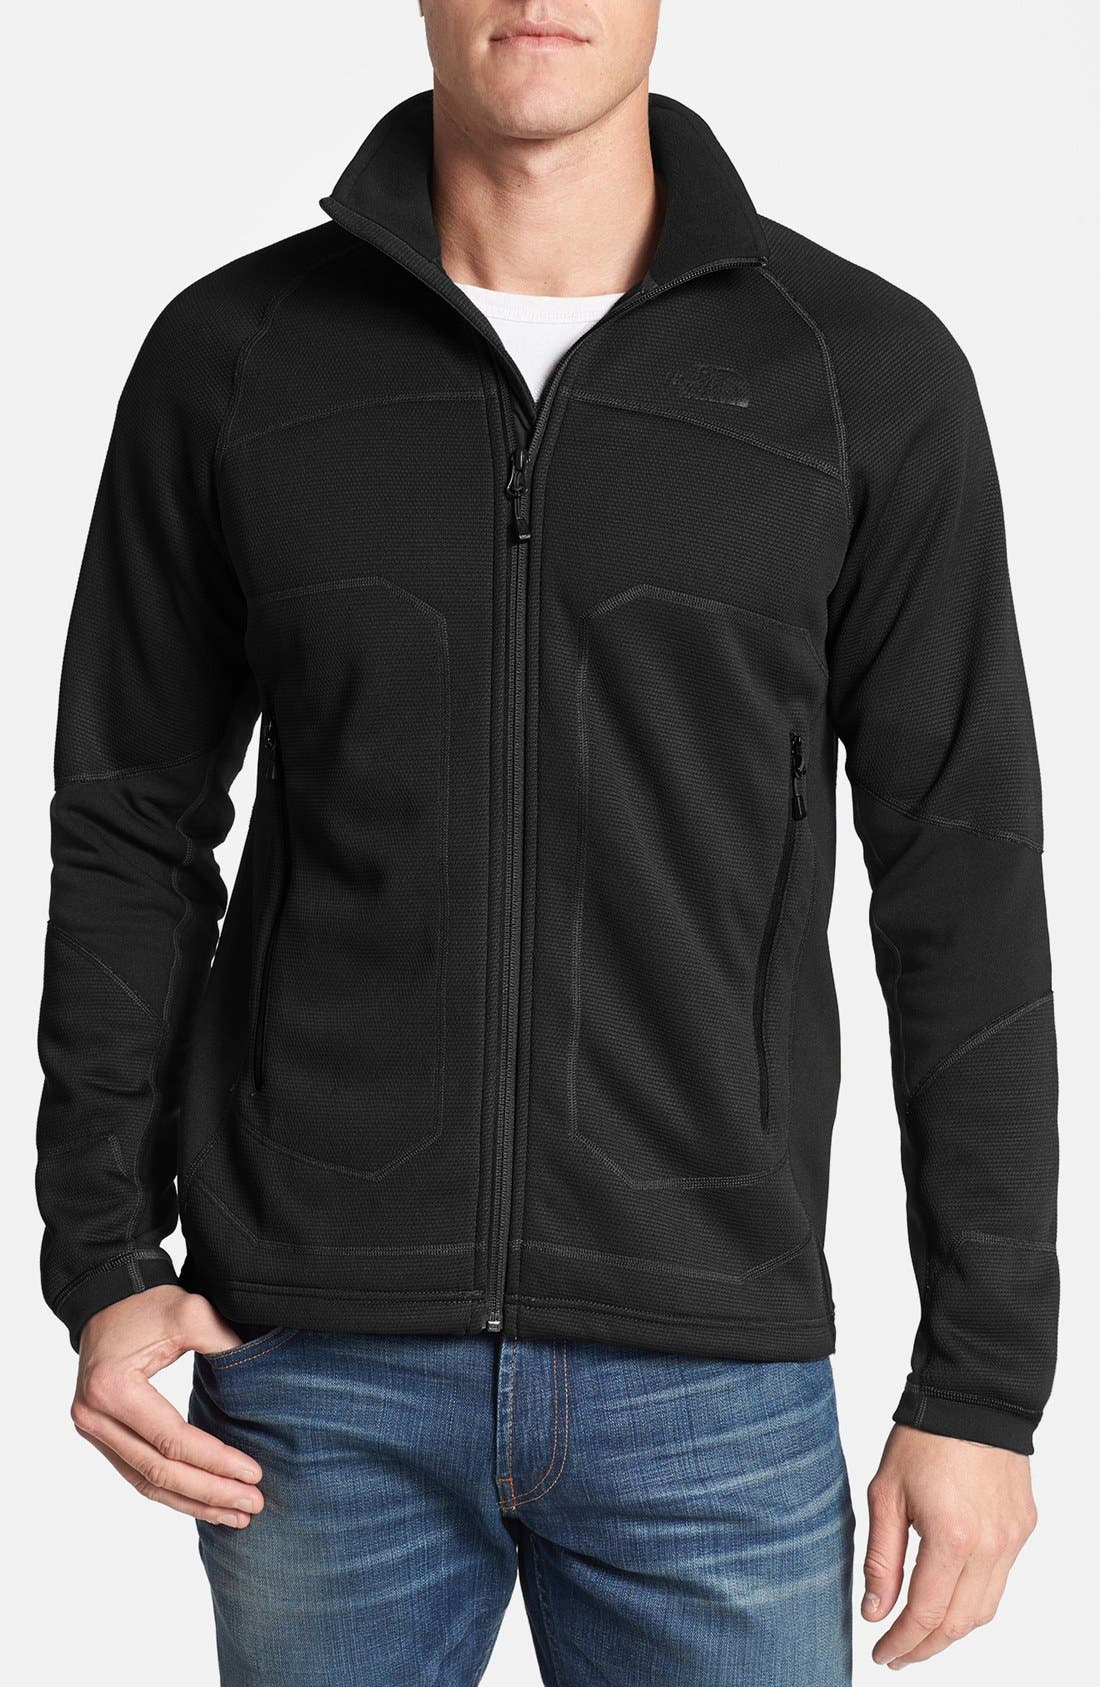 Alternate Image 1 Selected - The North Face 'Stealth Byron' Full Zip Sweater